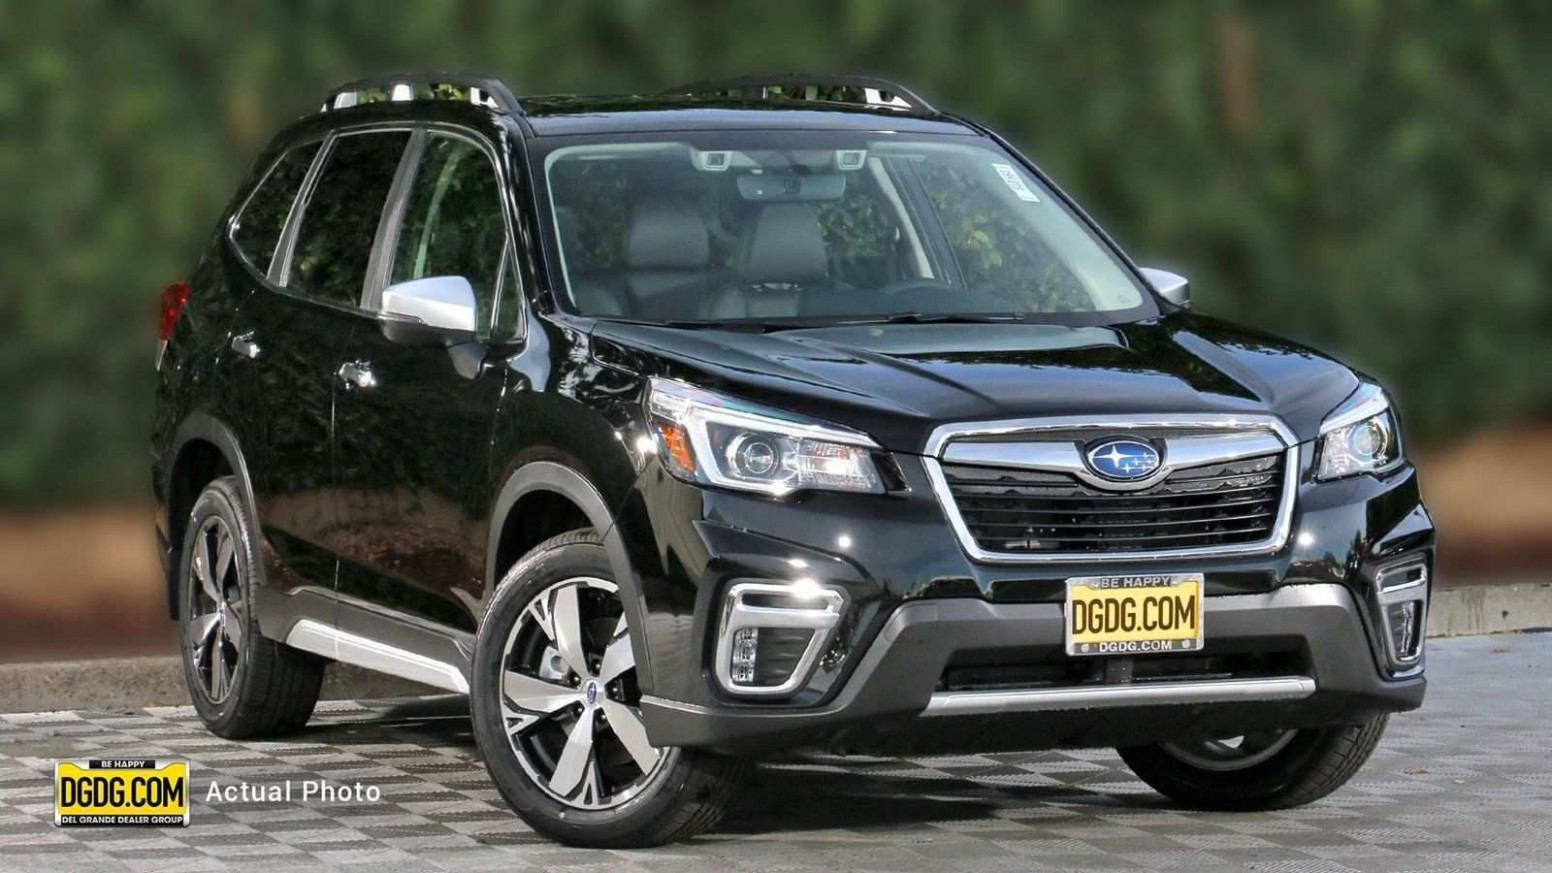 6 subaru forester kbb Overview and Price 6*6 - 6 subaru ..